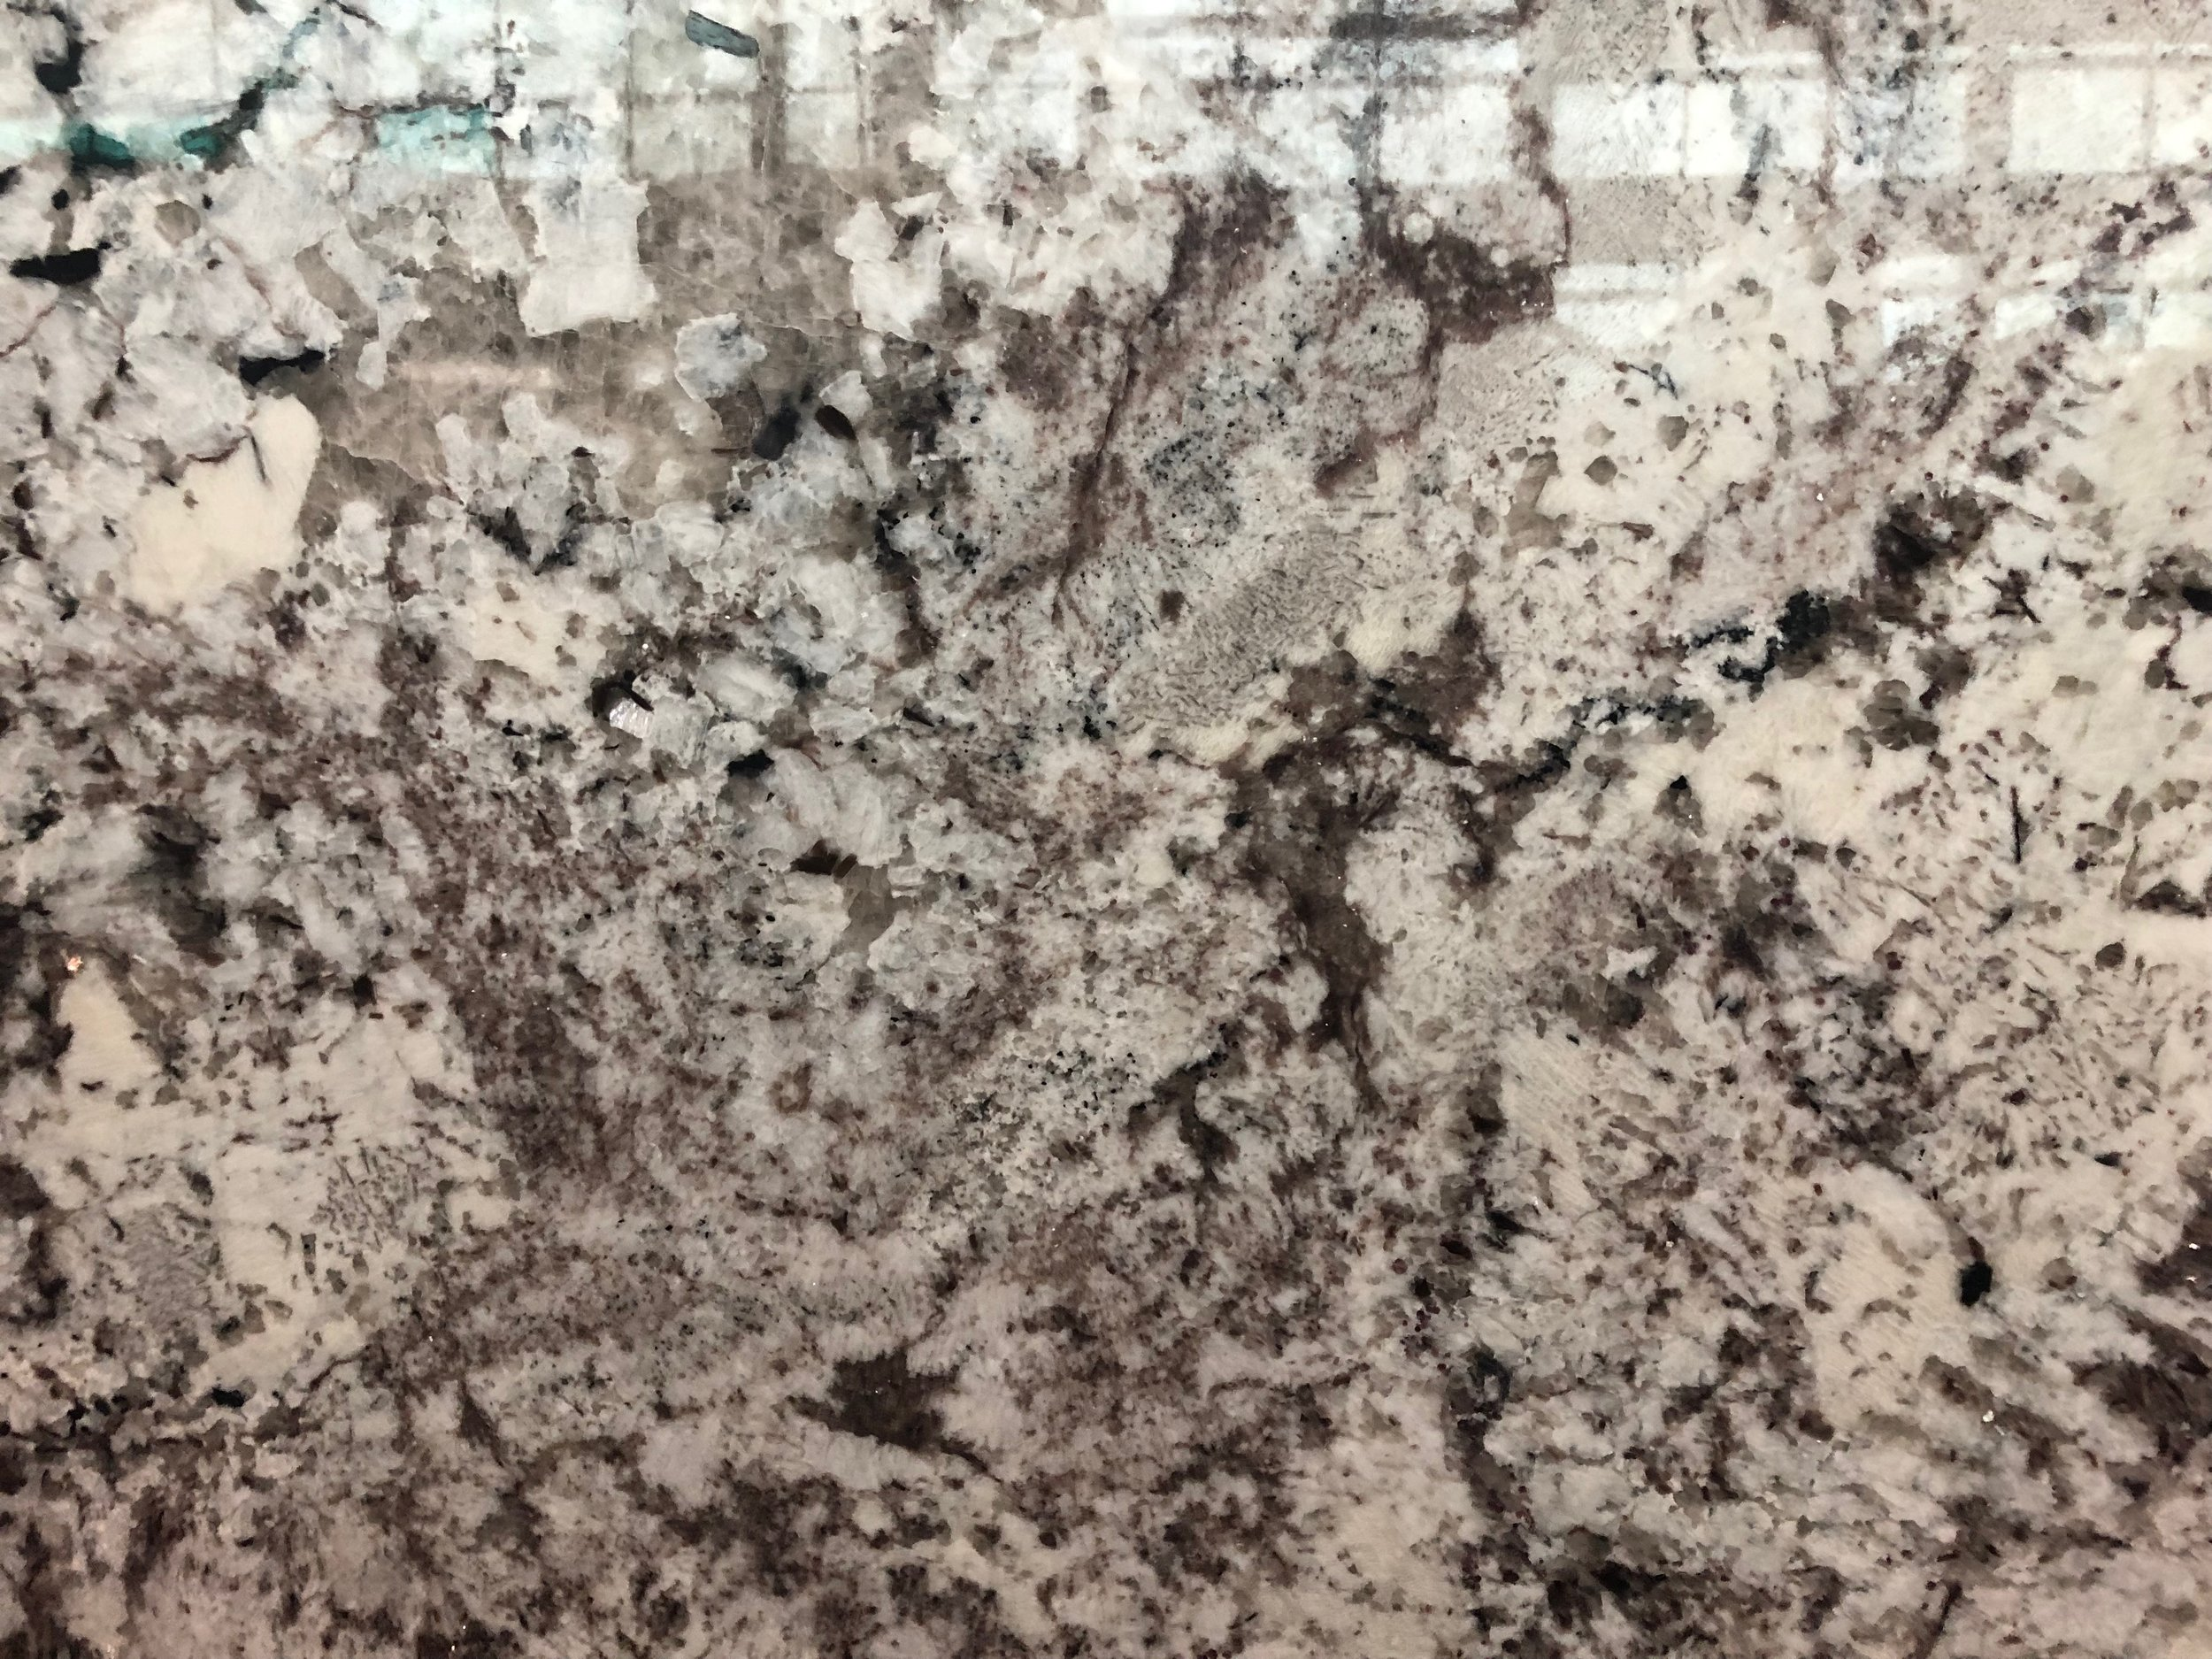 ATLAS WHITE - Quarried: IndiaMaterial Type: GraniteDescription: white and cream base coloring with breaks of brown, grey and blacks in random patterning throughout.